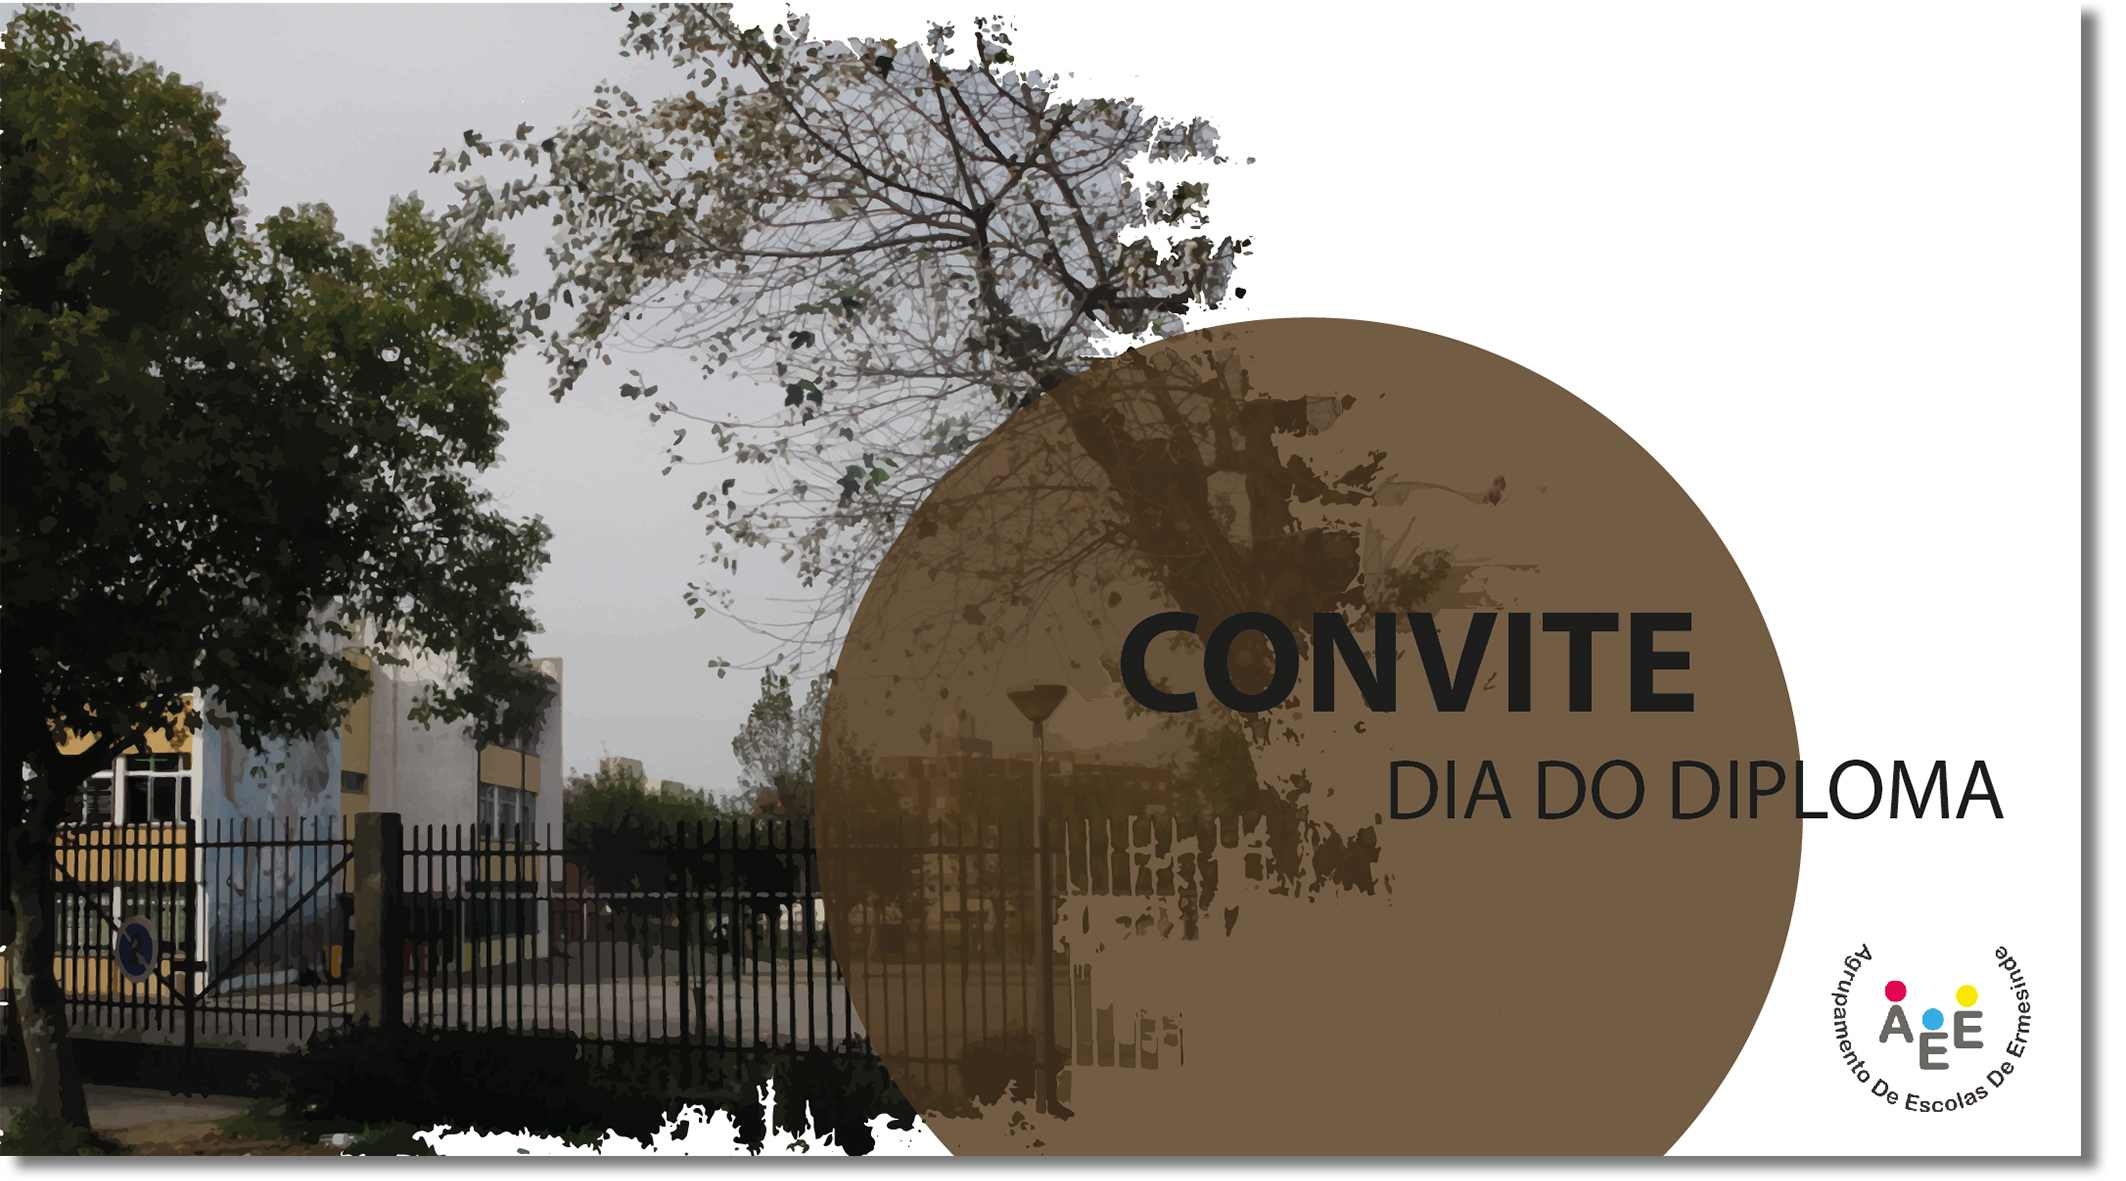 Convite dia do diploma shadow